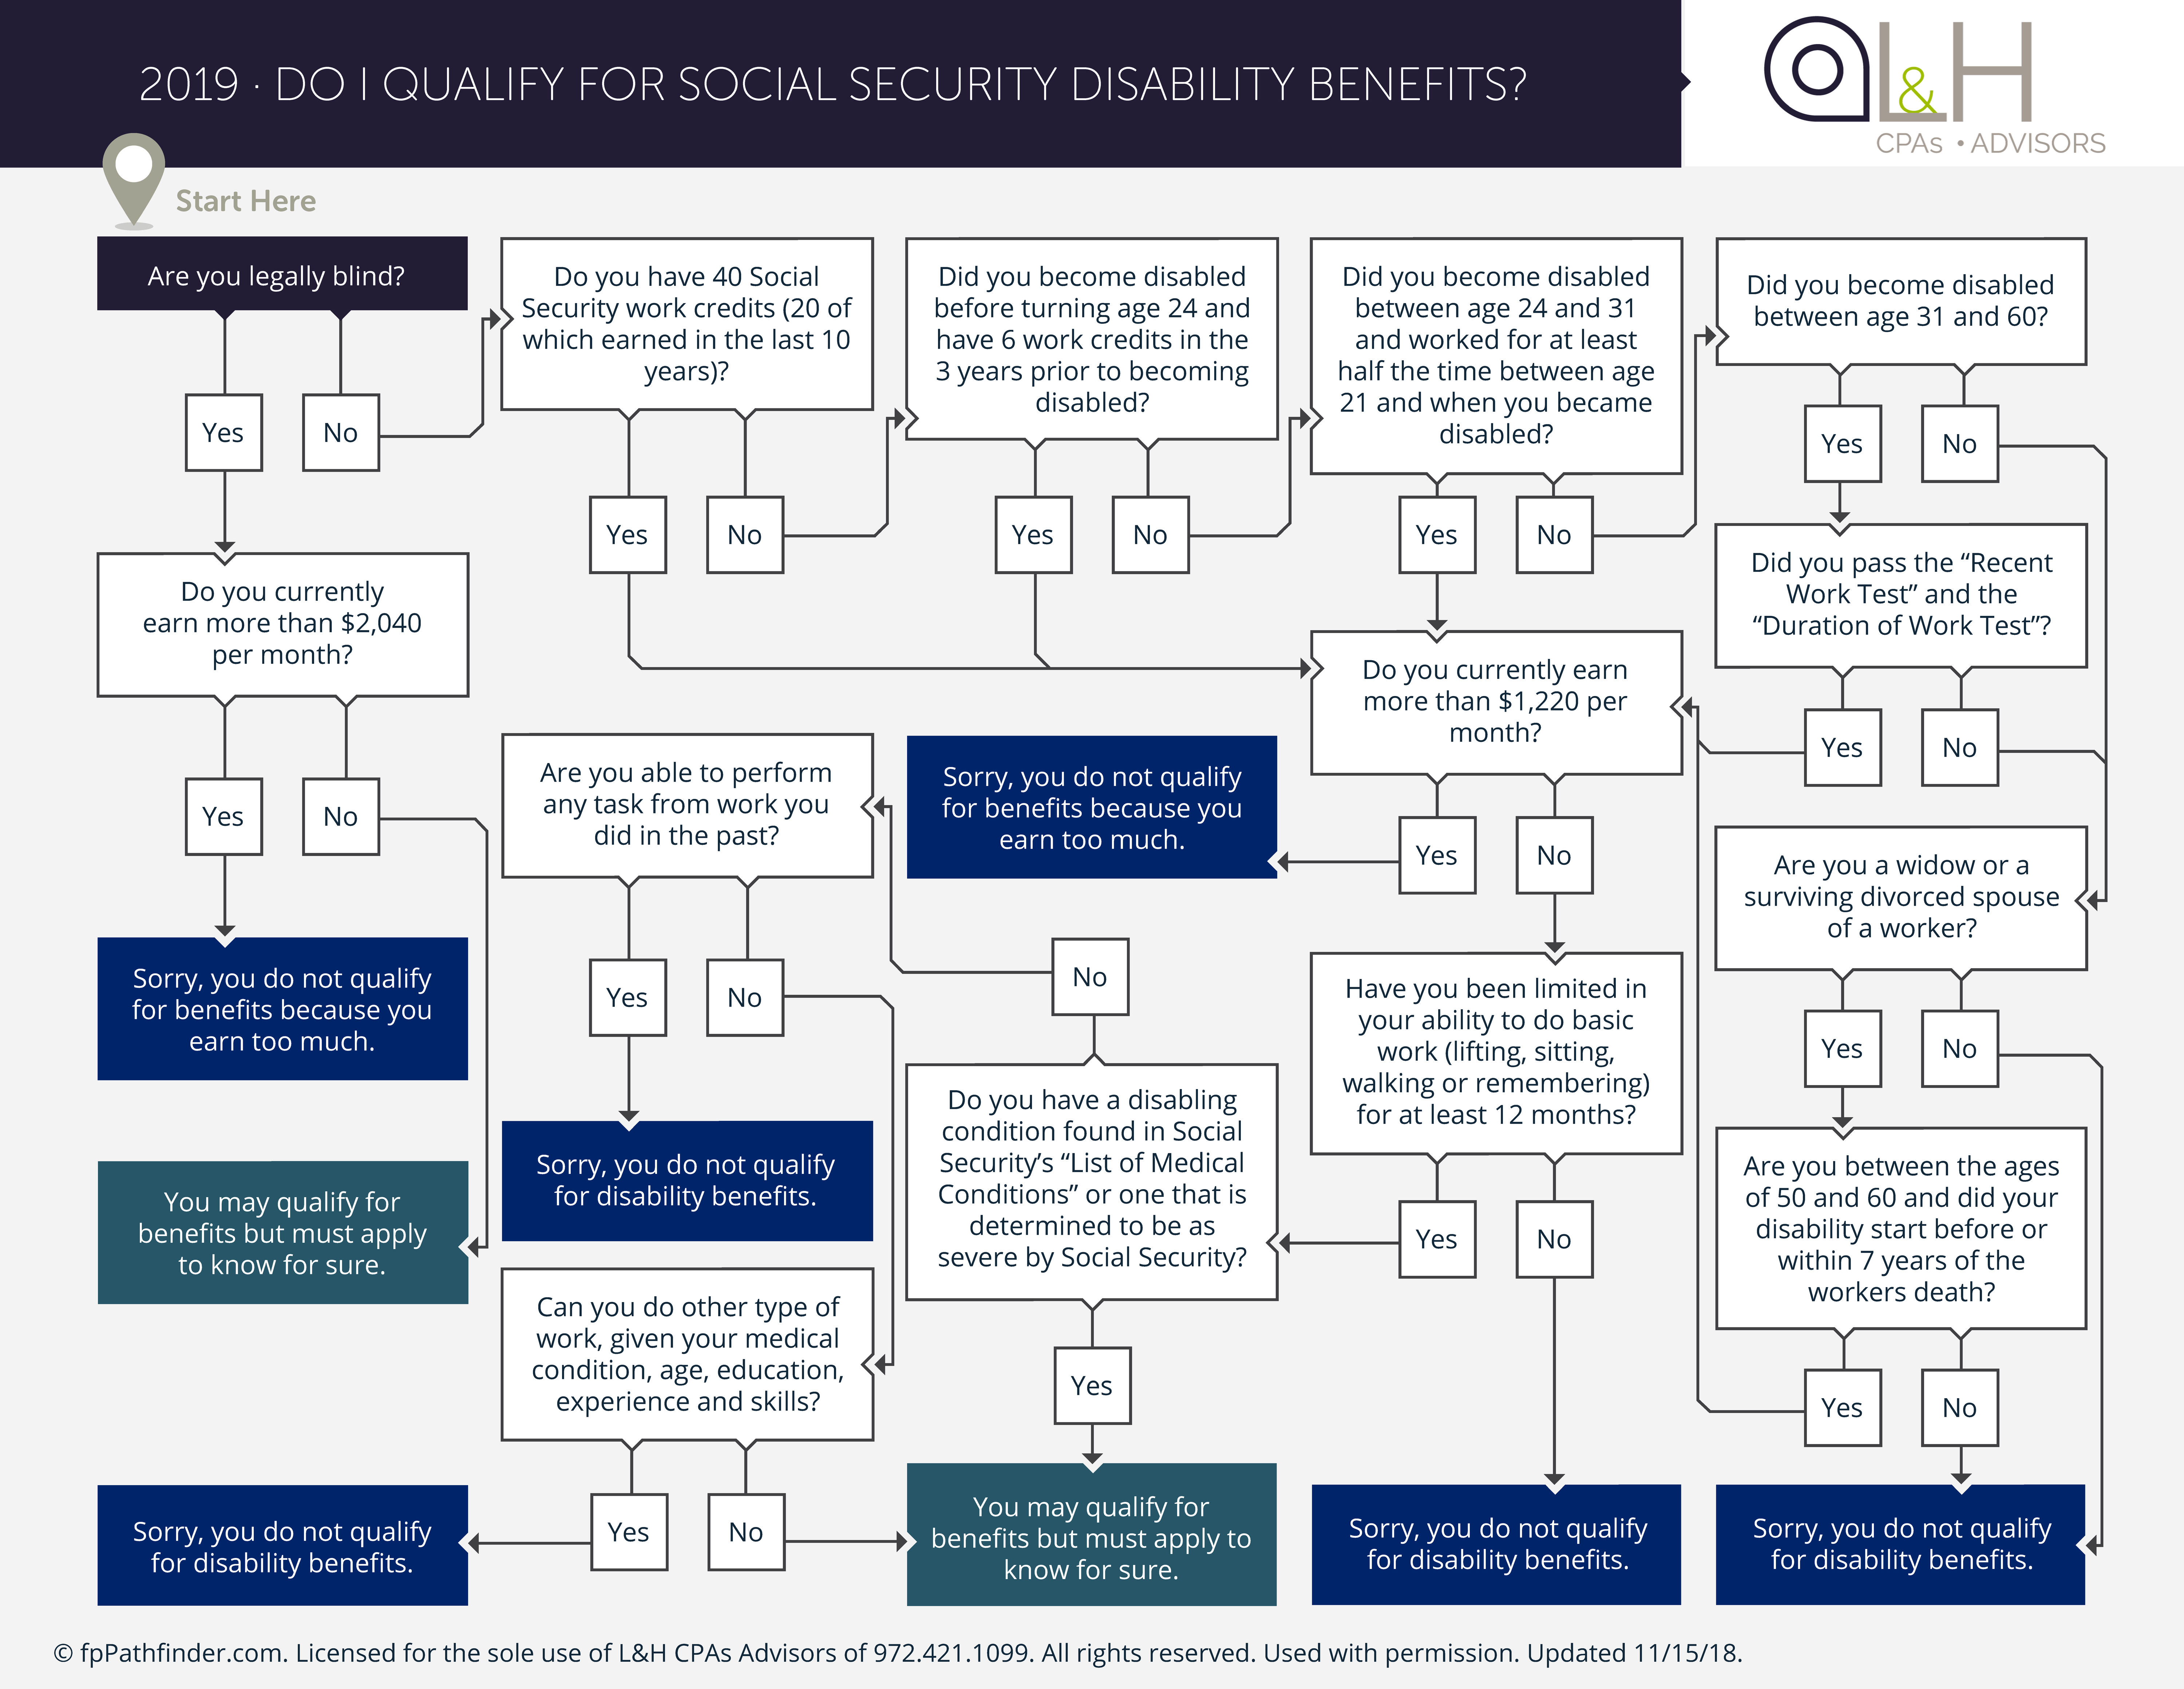 Do You Qualify For Social Security Disability Benefits?